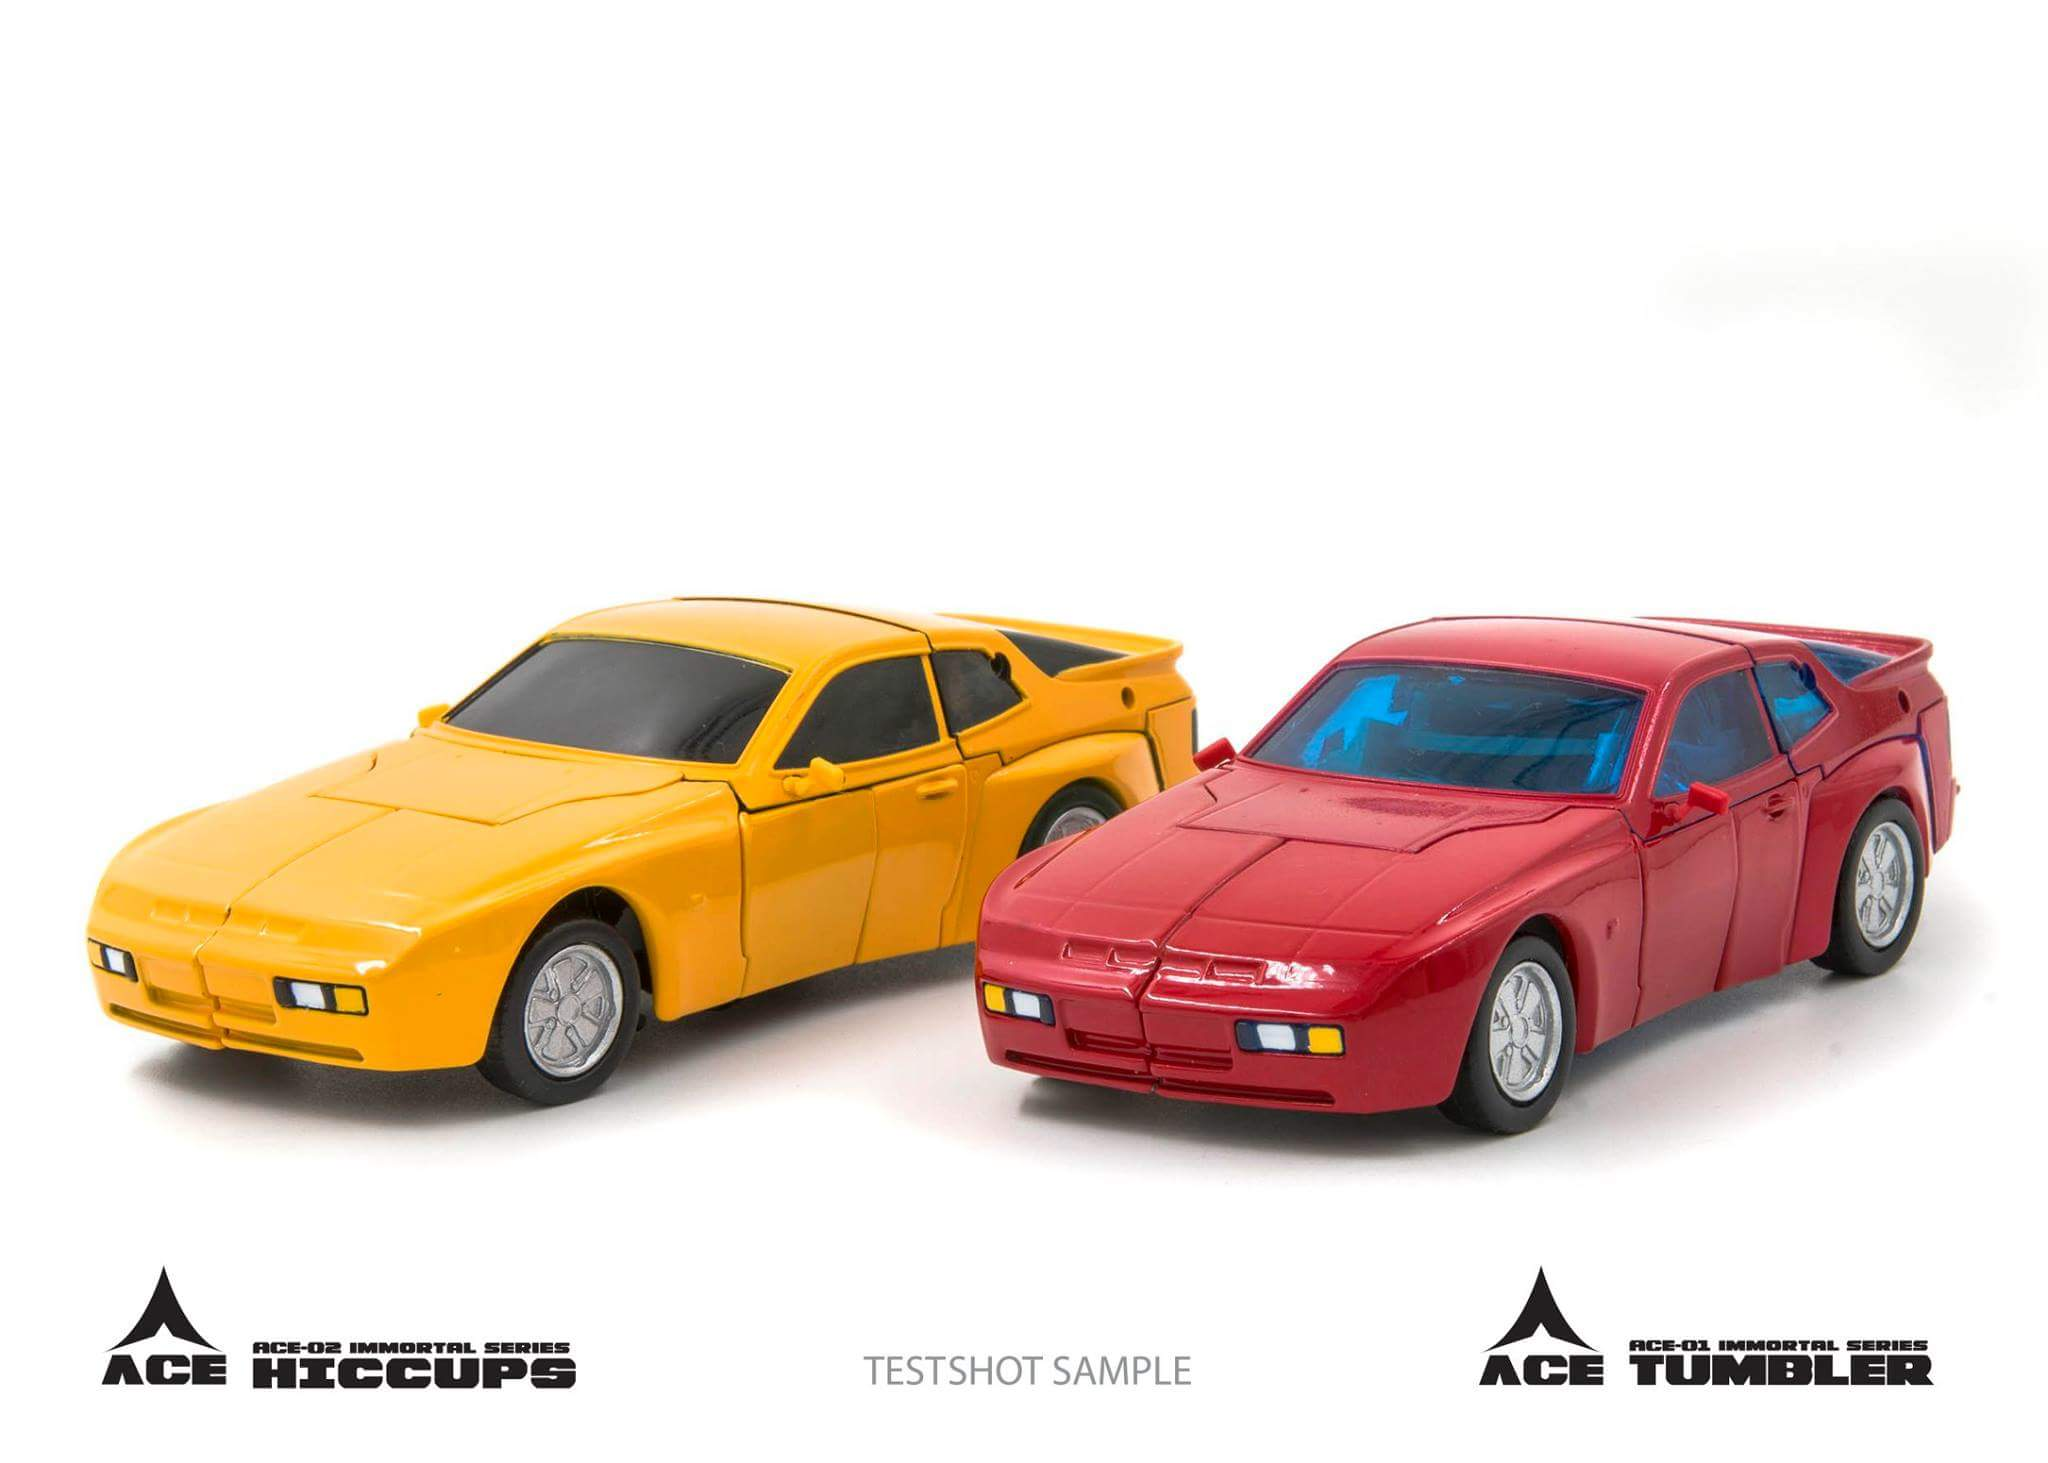 [ACE Collectables] Produit Tiers - Minibots MP - ACE-01 Tumbler (aka Cliffjumper/Matamore), ACE-02 Hiccups (aka Hubcap/Virevolto), ACE-03 Trident (aka Seaspray/Embruns) AWjsmNRb